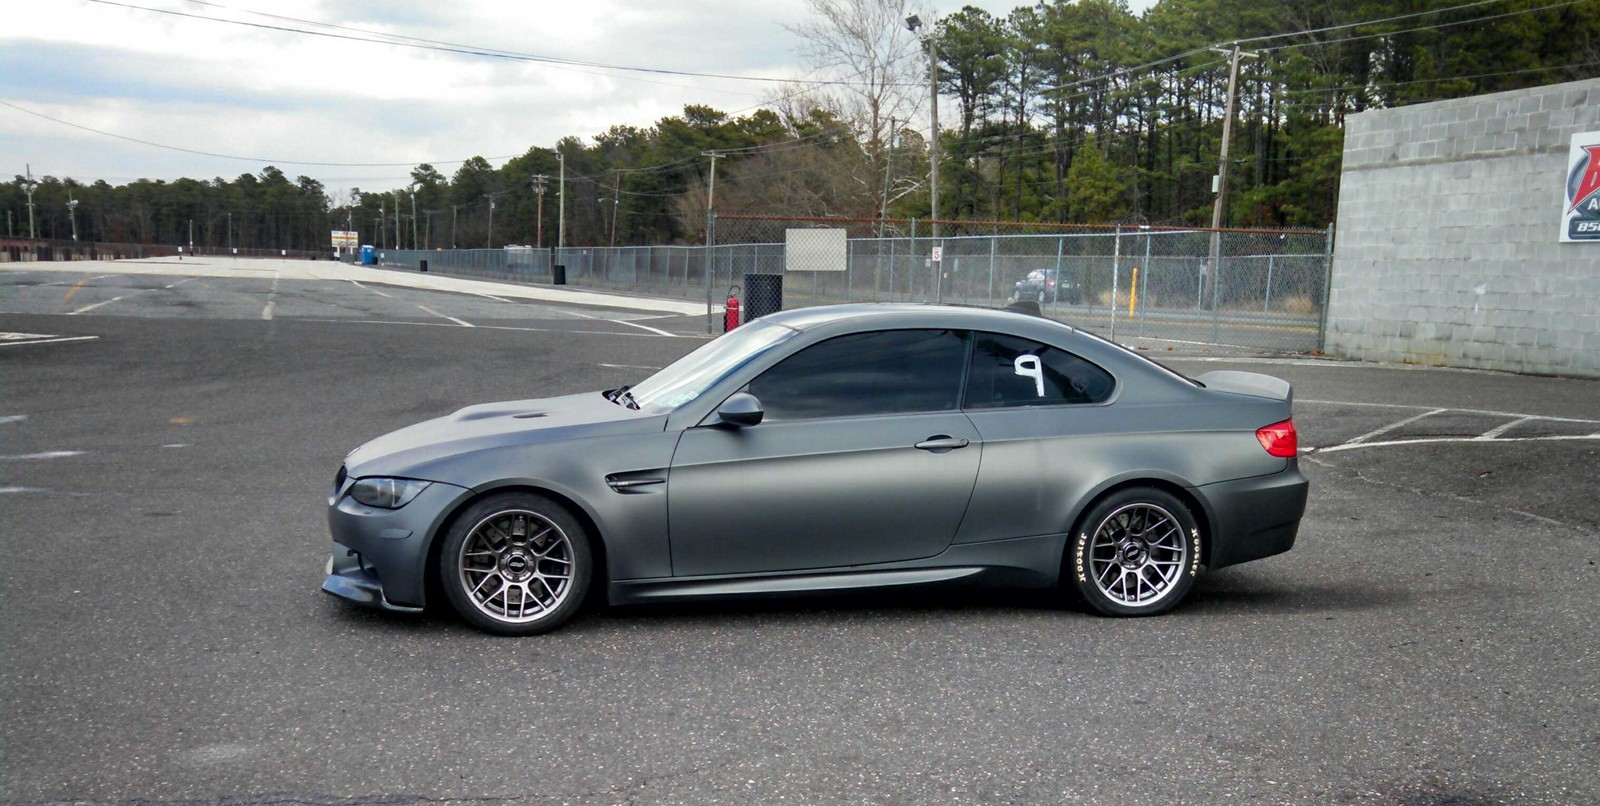 2009 BMW M3 Evolve E625 Supercharger